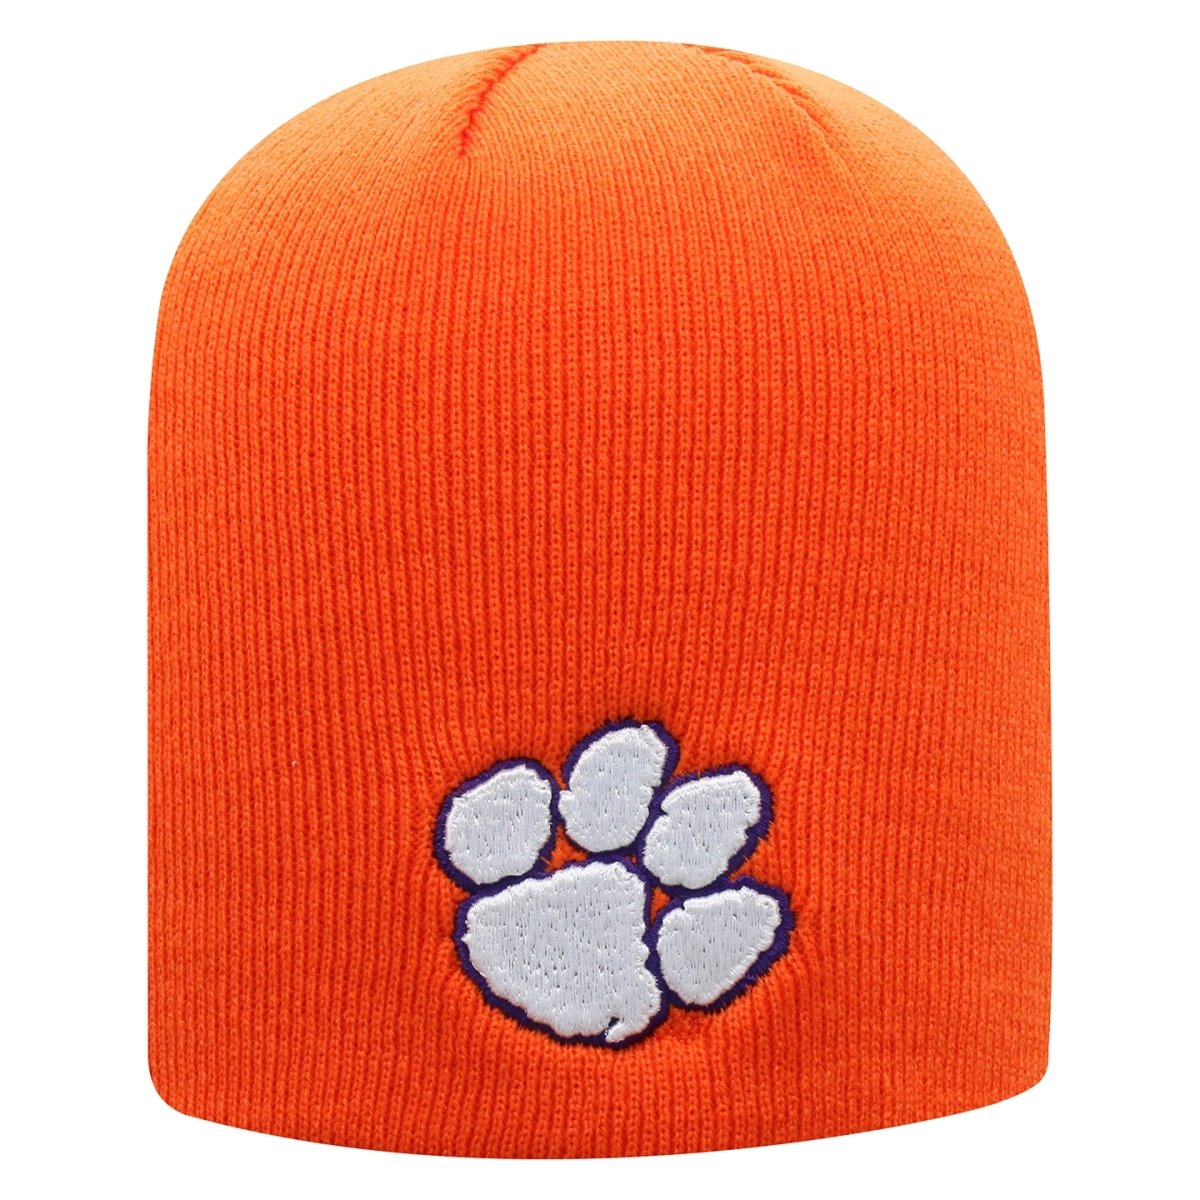 Top of the World Clemson Tigers Classic Beanie With White Paw - Mr. Knickerbocker